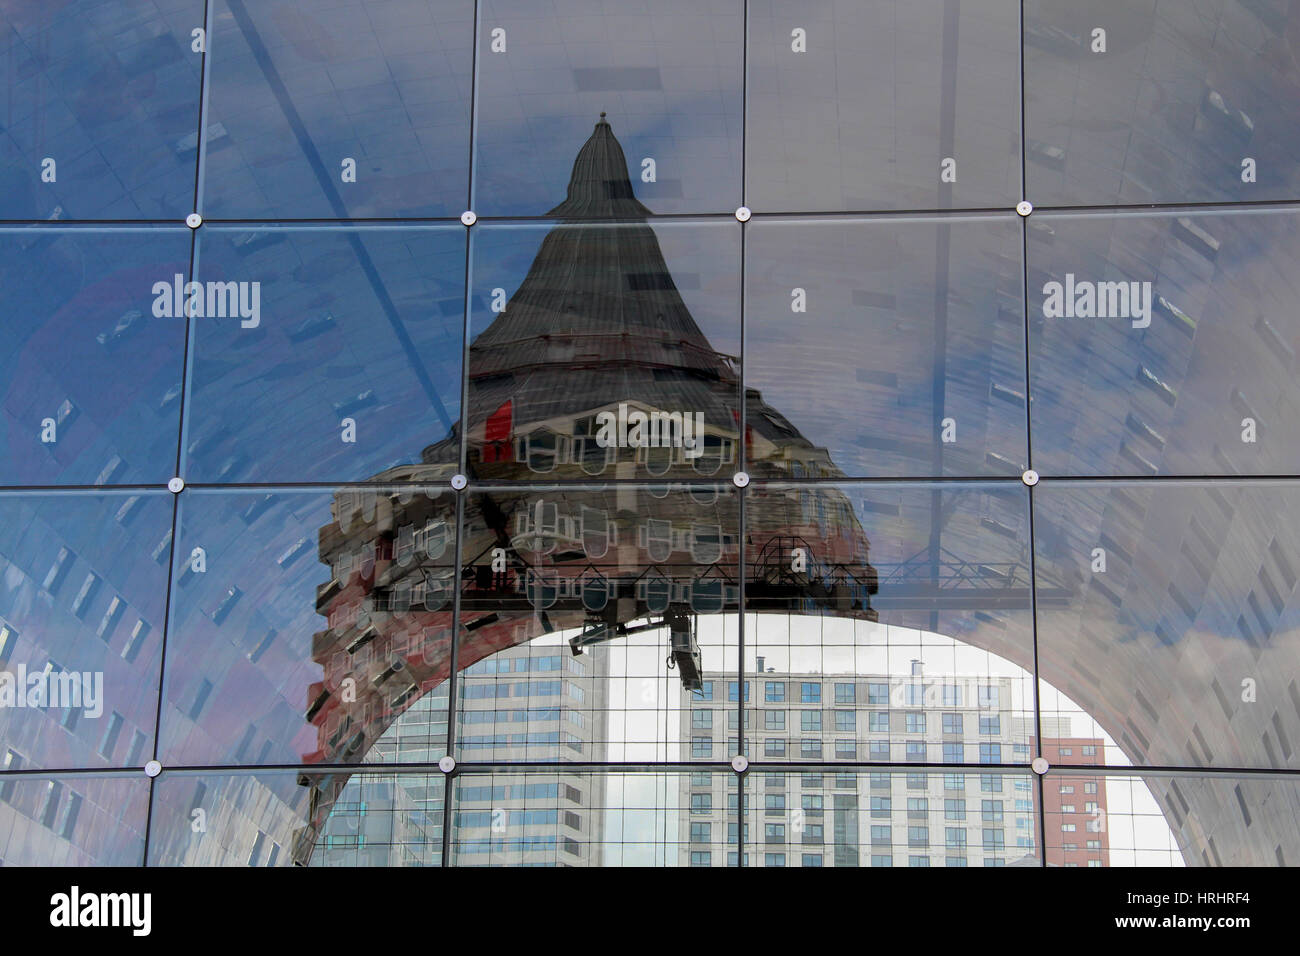 Reflection in the glass panels of the Markthal in Rotterdam, the Netherlands - Stock Image